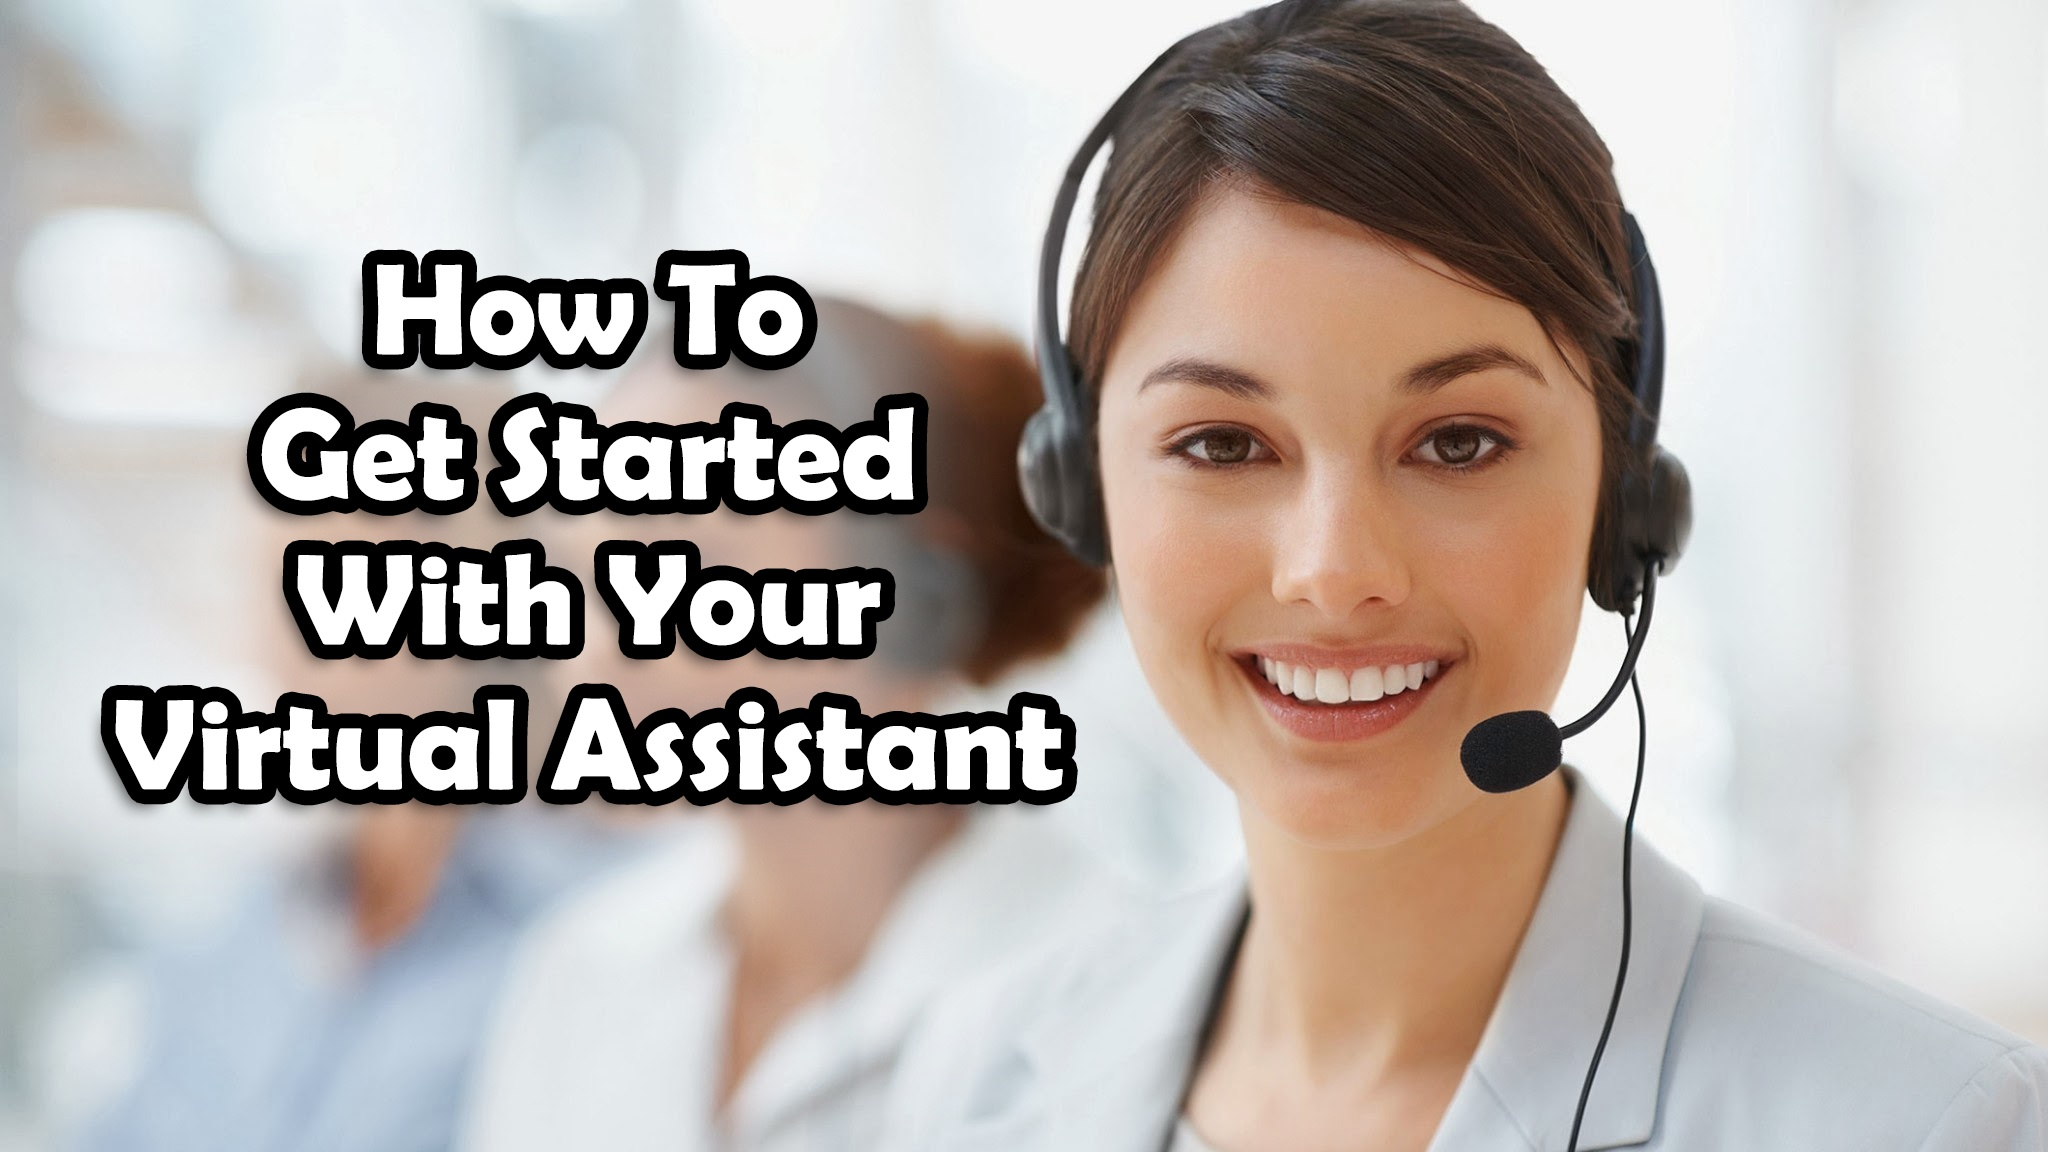 How To Get Started With Your Virtual Assistant